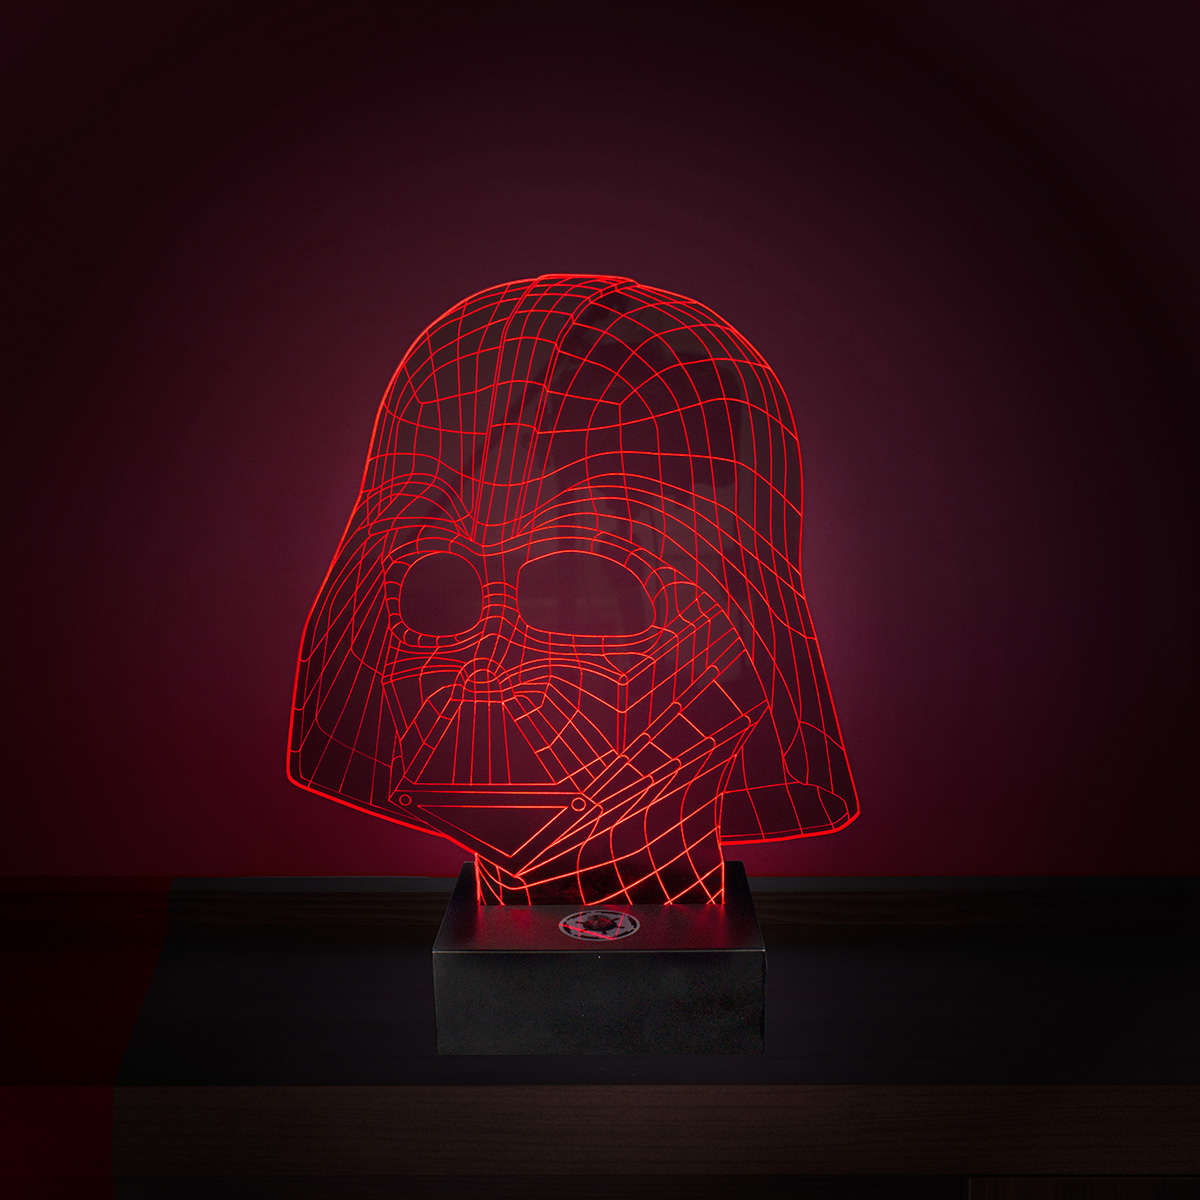 Lampe Star Wars LED - Effet 3D